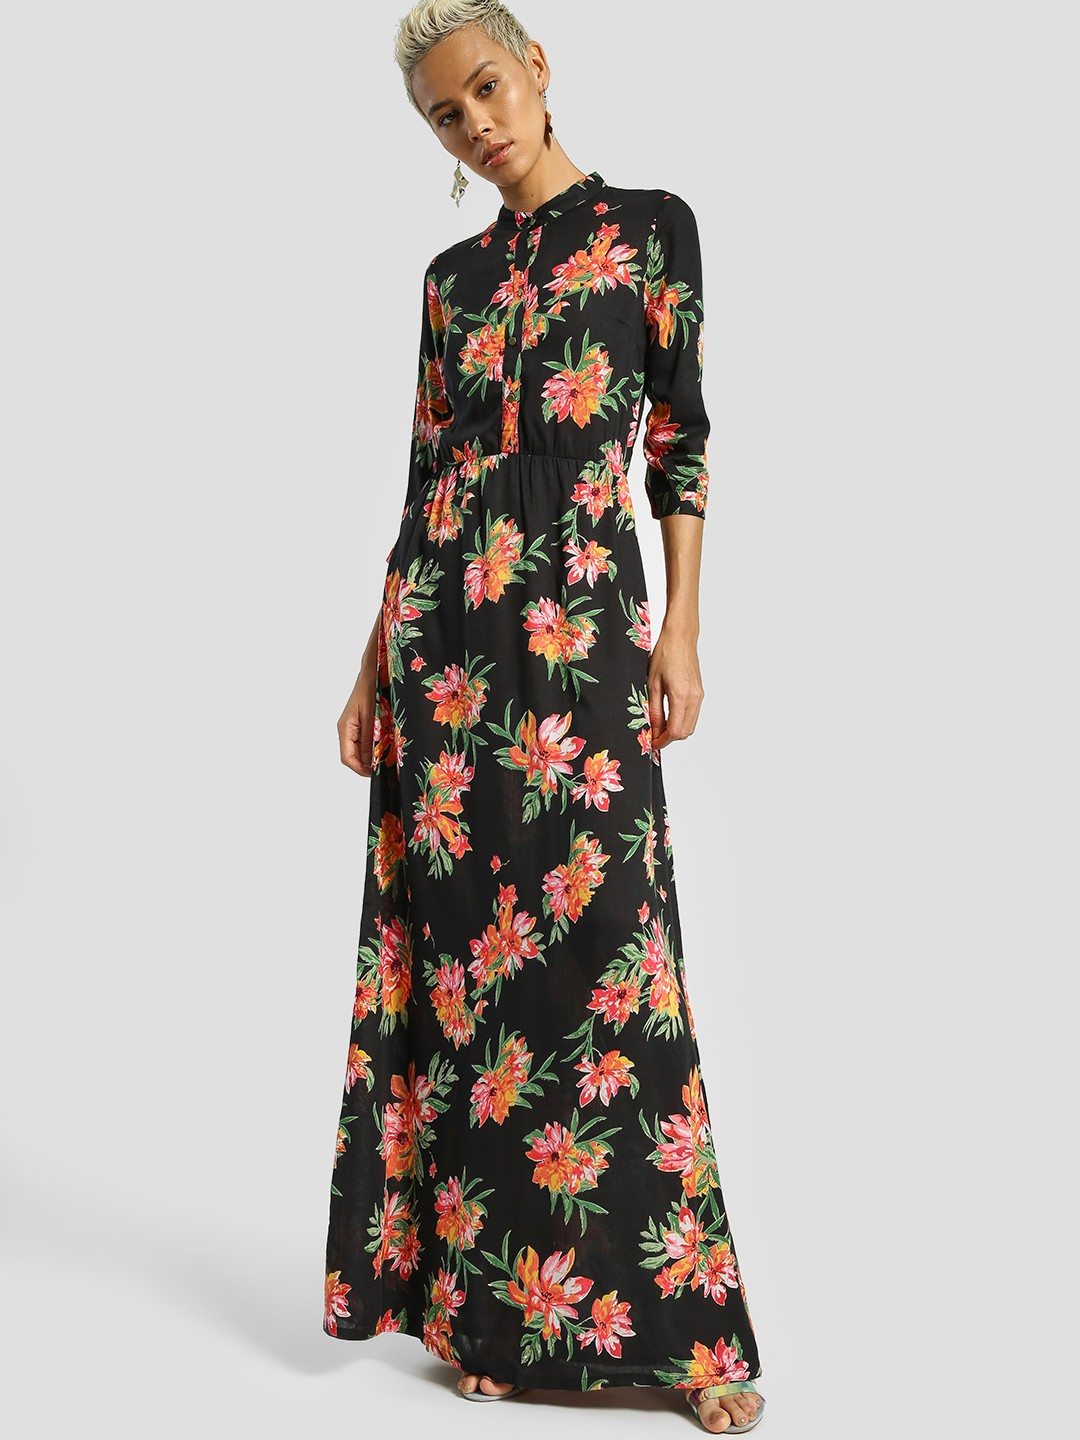 Miaminx Black Floral Print Maxi Dress 1